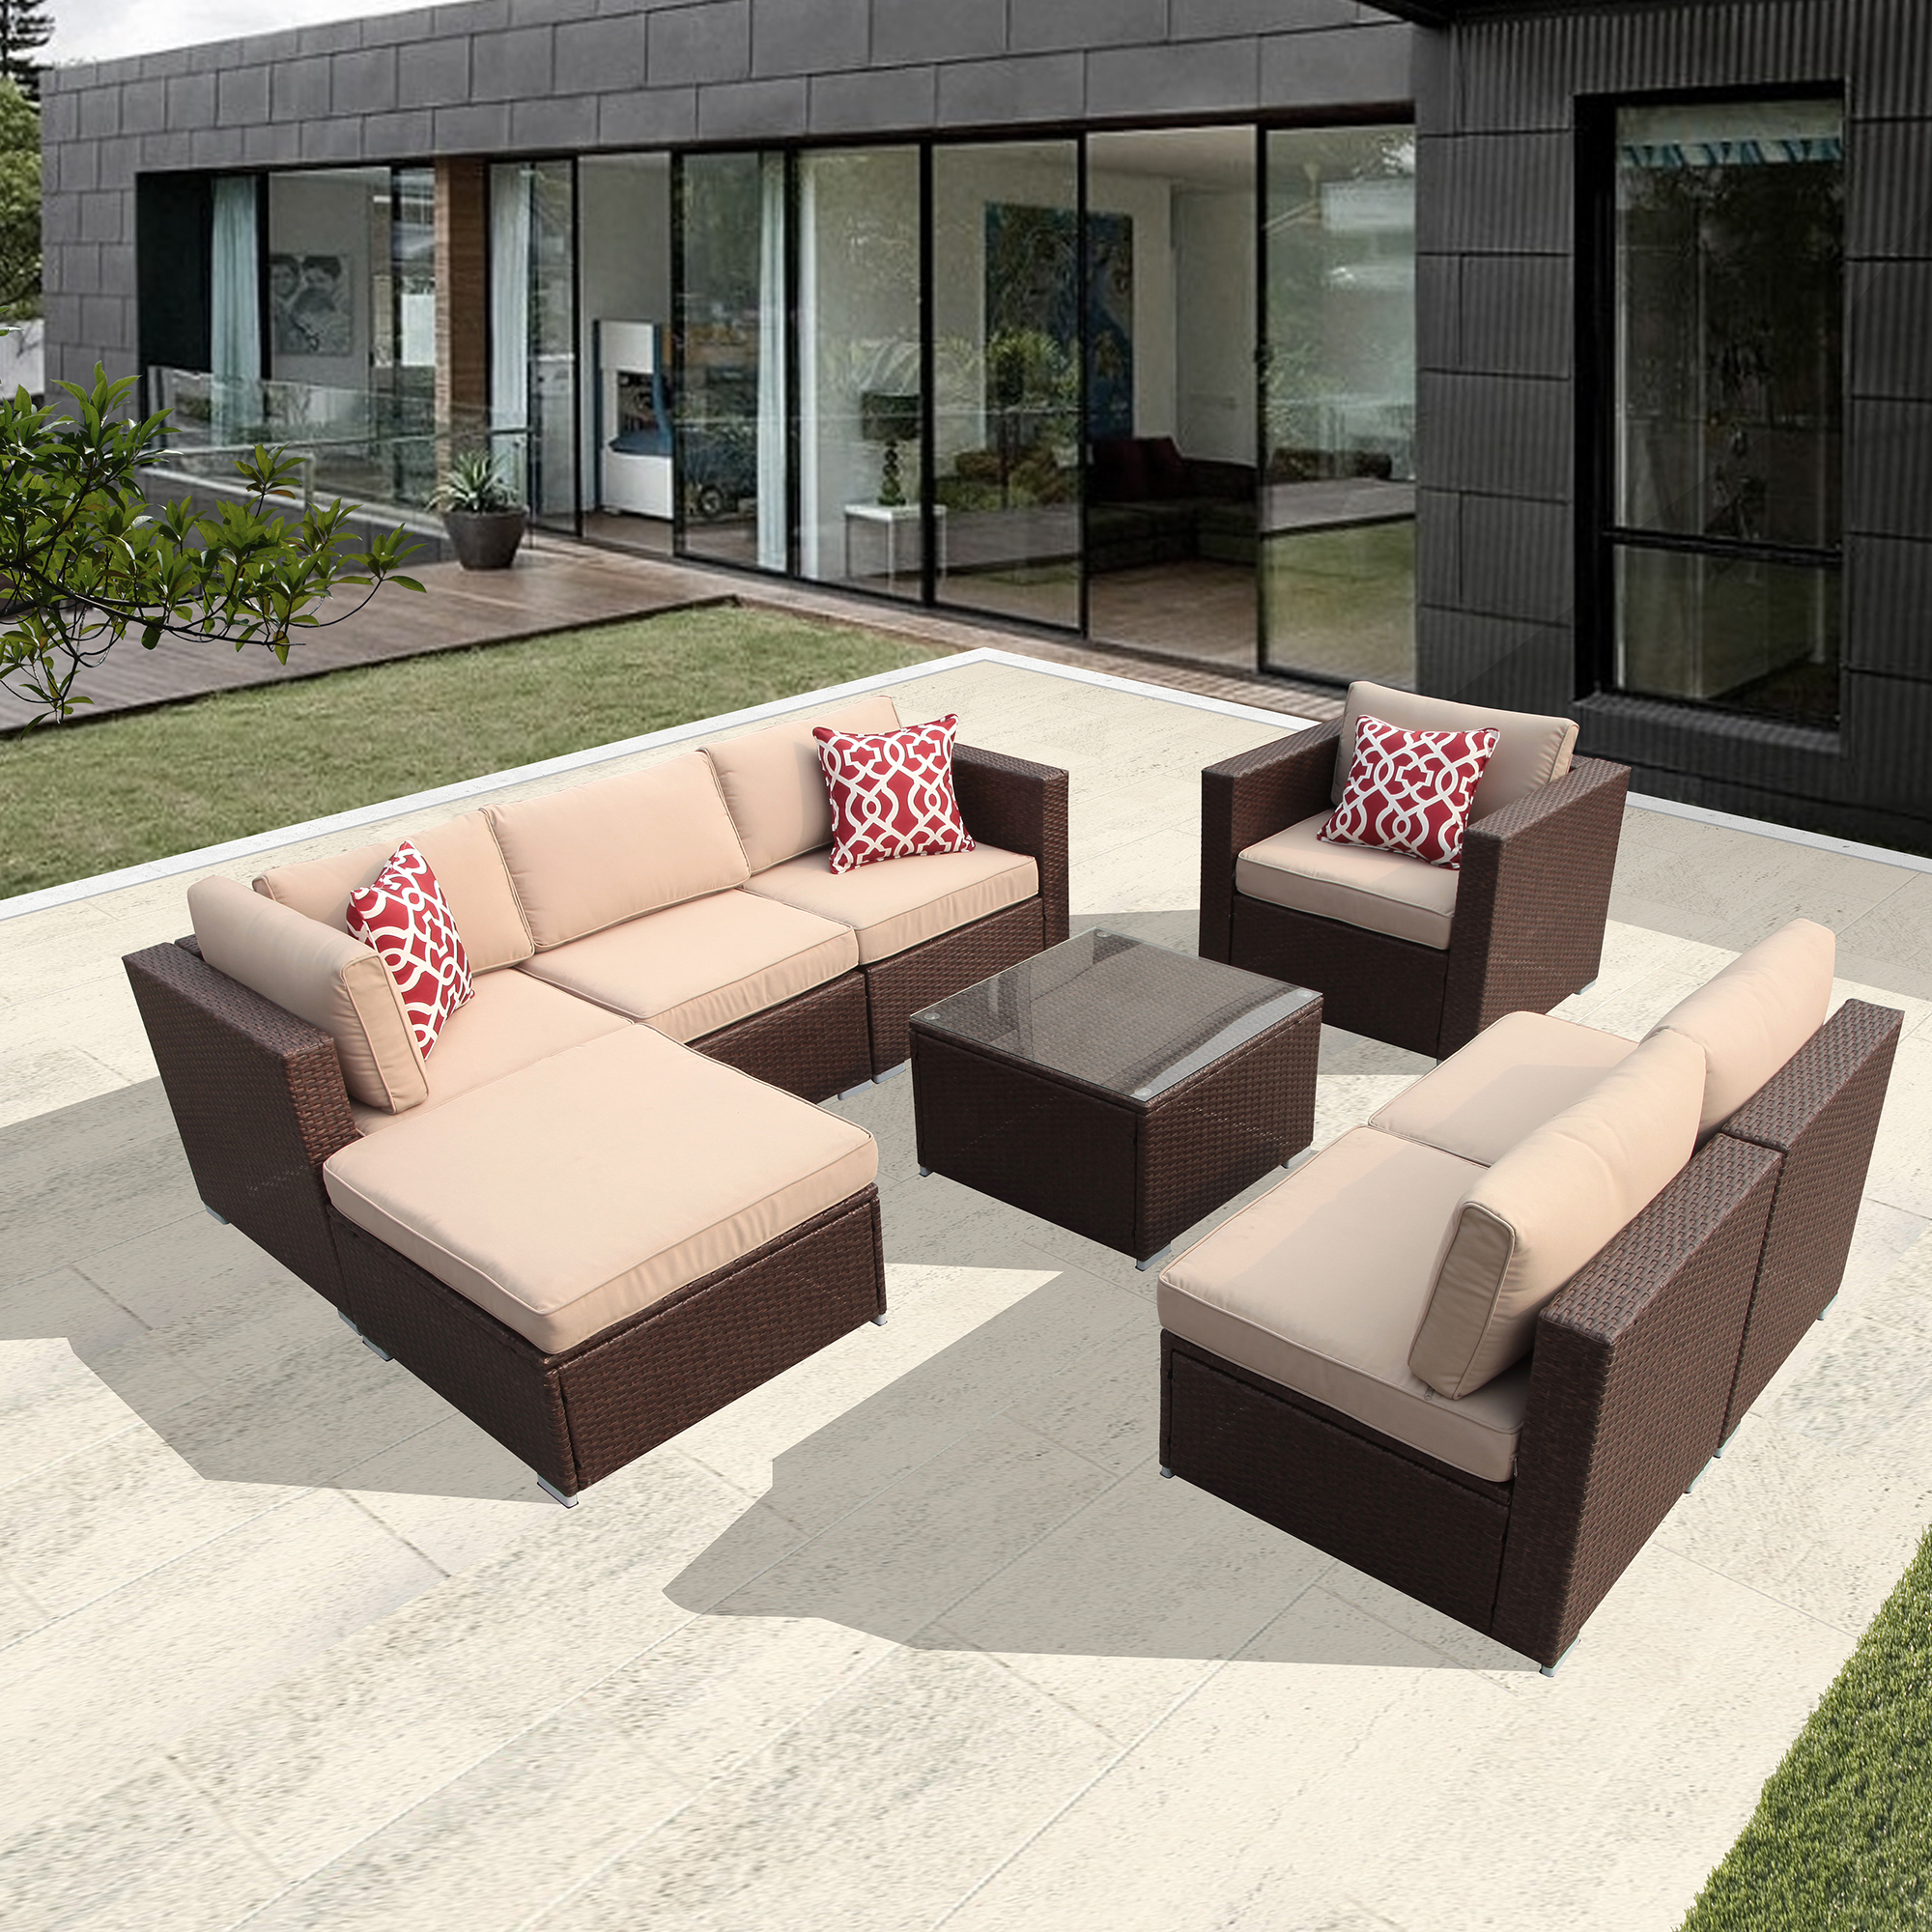 8pc Outdoor Rattan Sectional Furniture Set with Beige Seat and Back Cushions, Red Throw... by